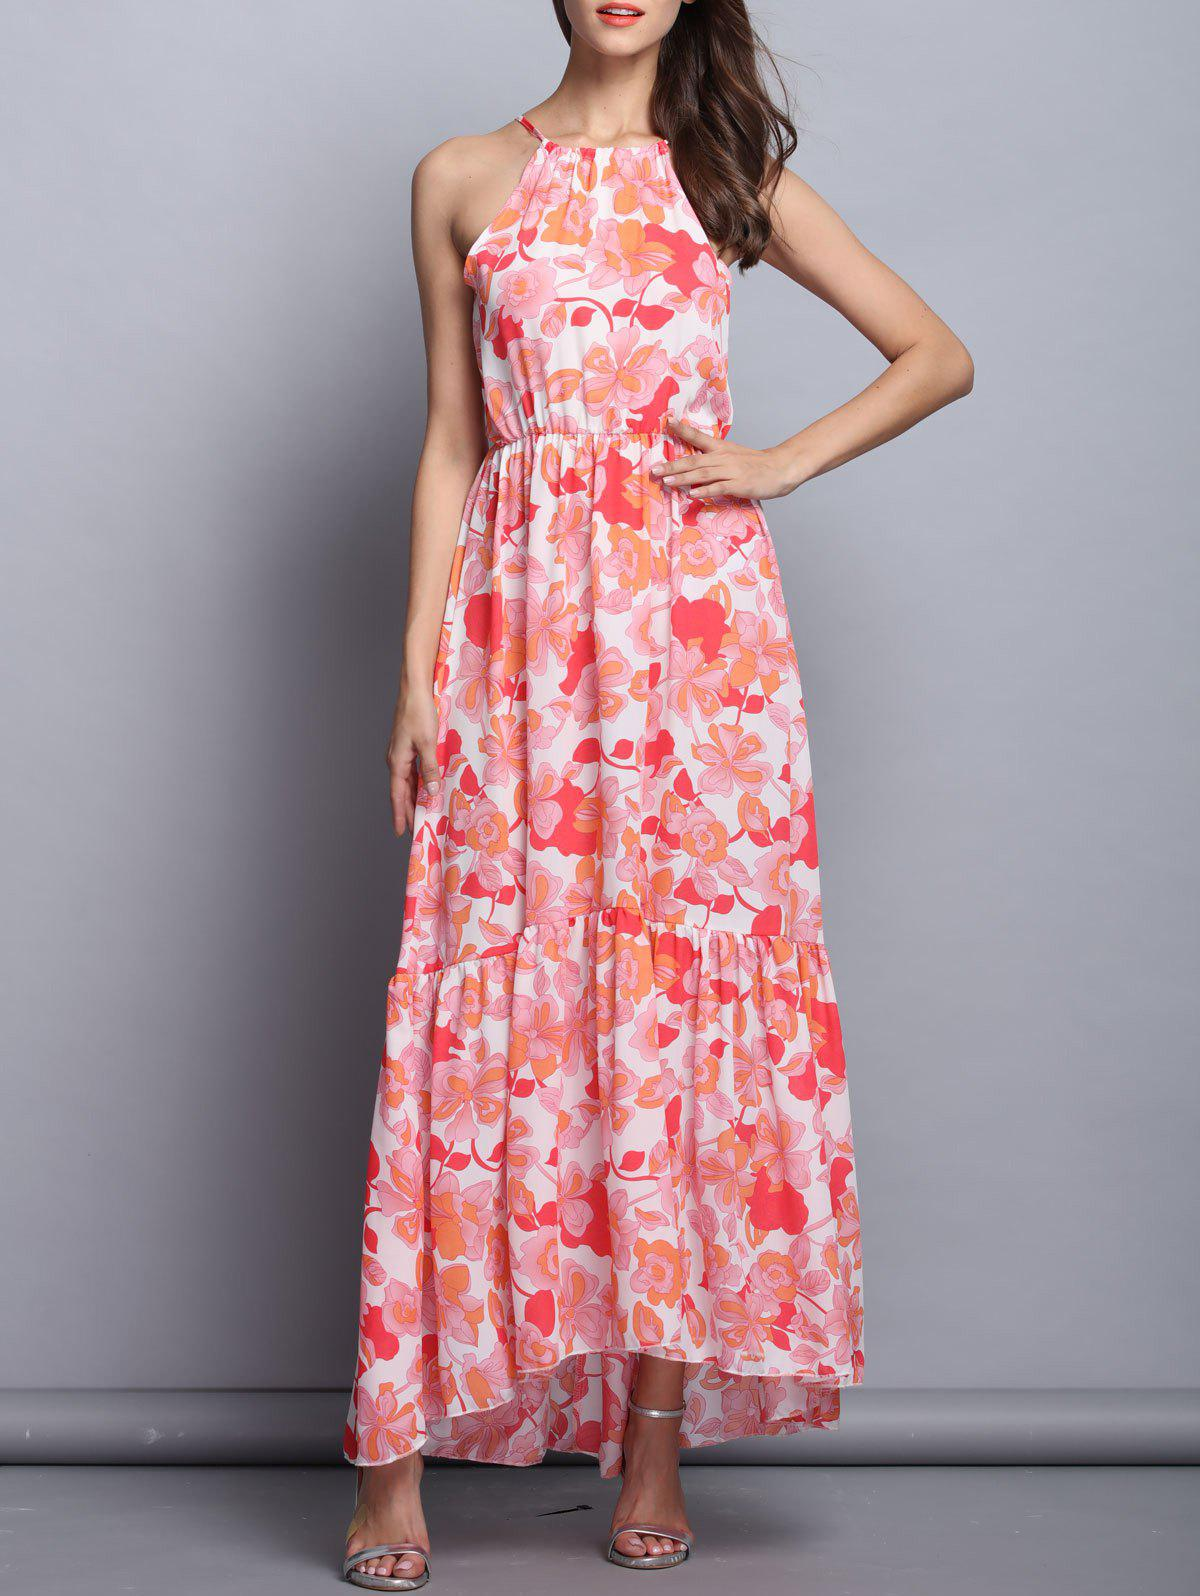 Charming Spaghetti Strap Floral High Low Maxi Dress For Women